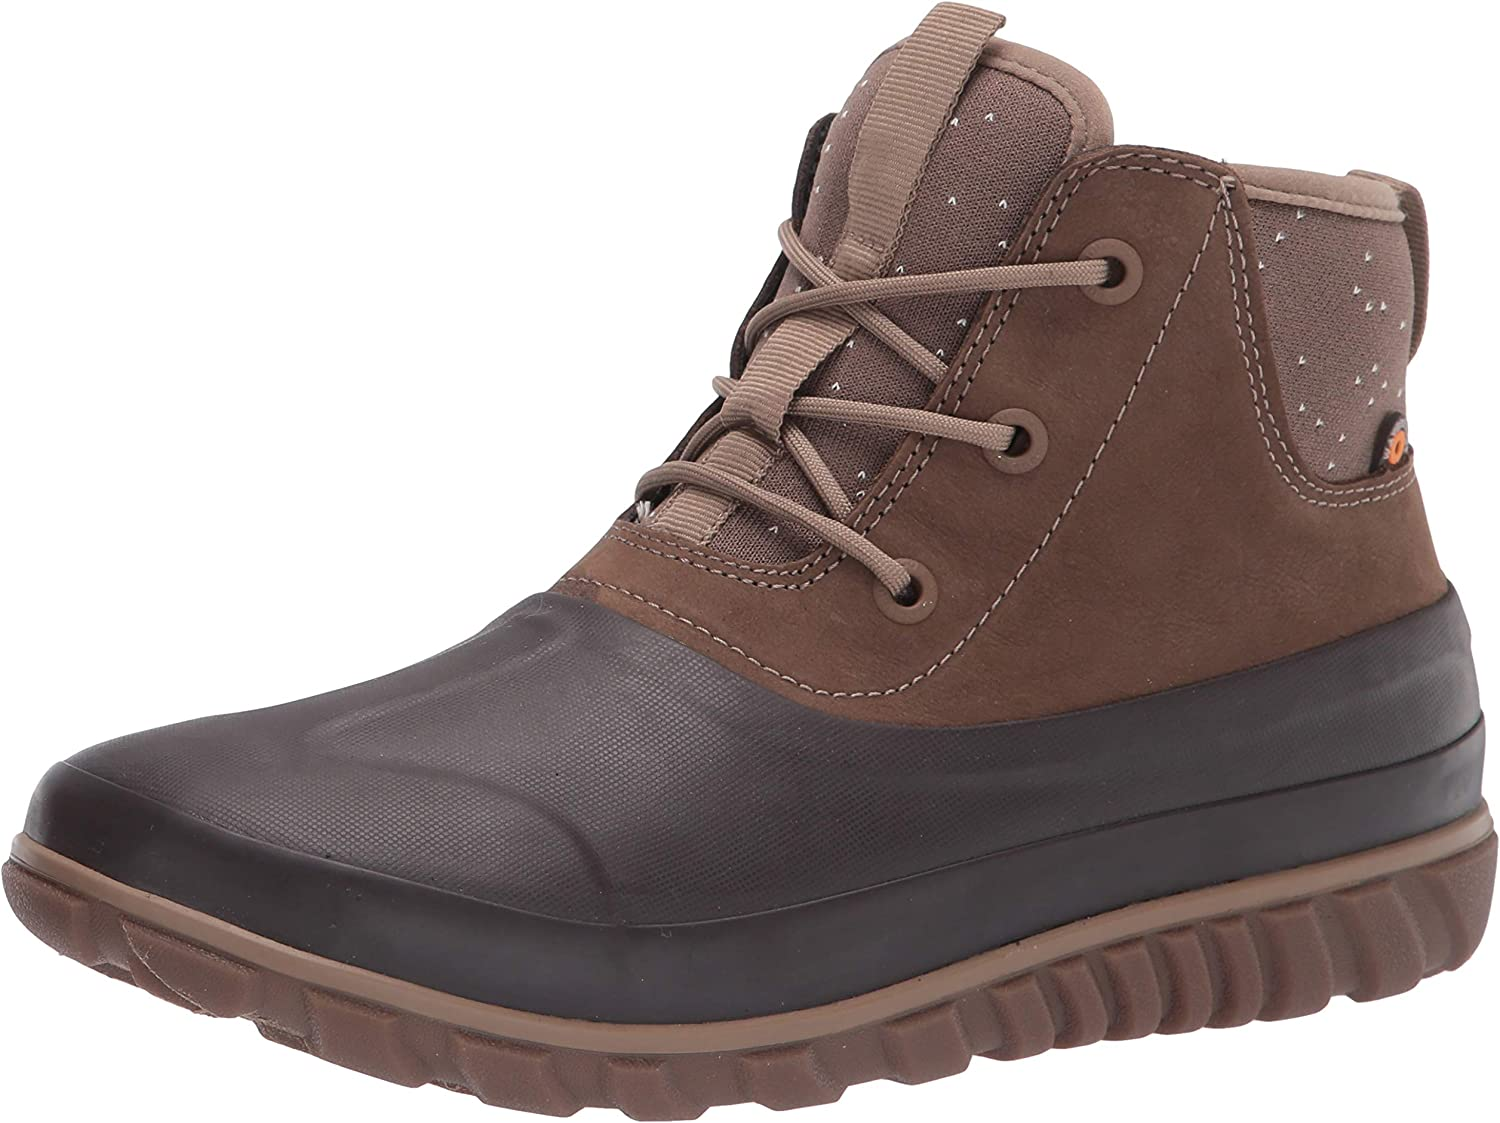 Bogs Women's Classic Casual Lace Leather Snow Boot, Tan, 10